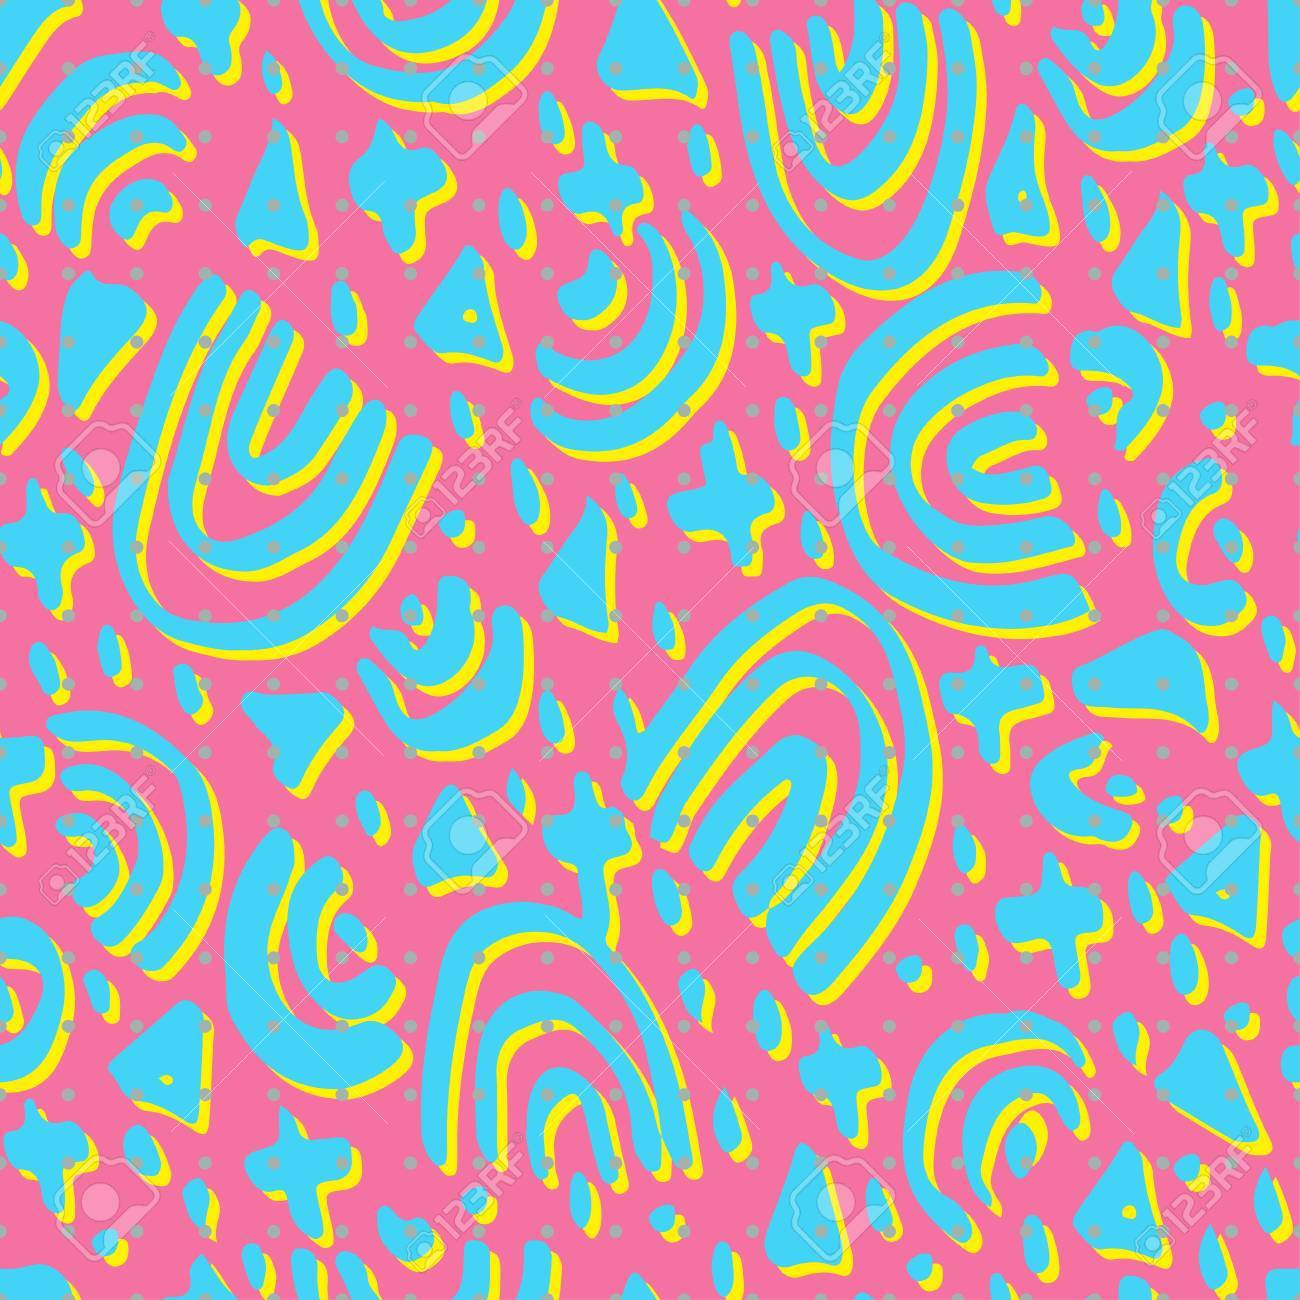 swatches of memphis style patterns seamless background design